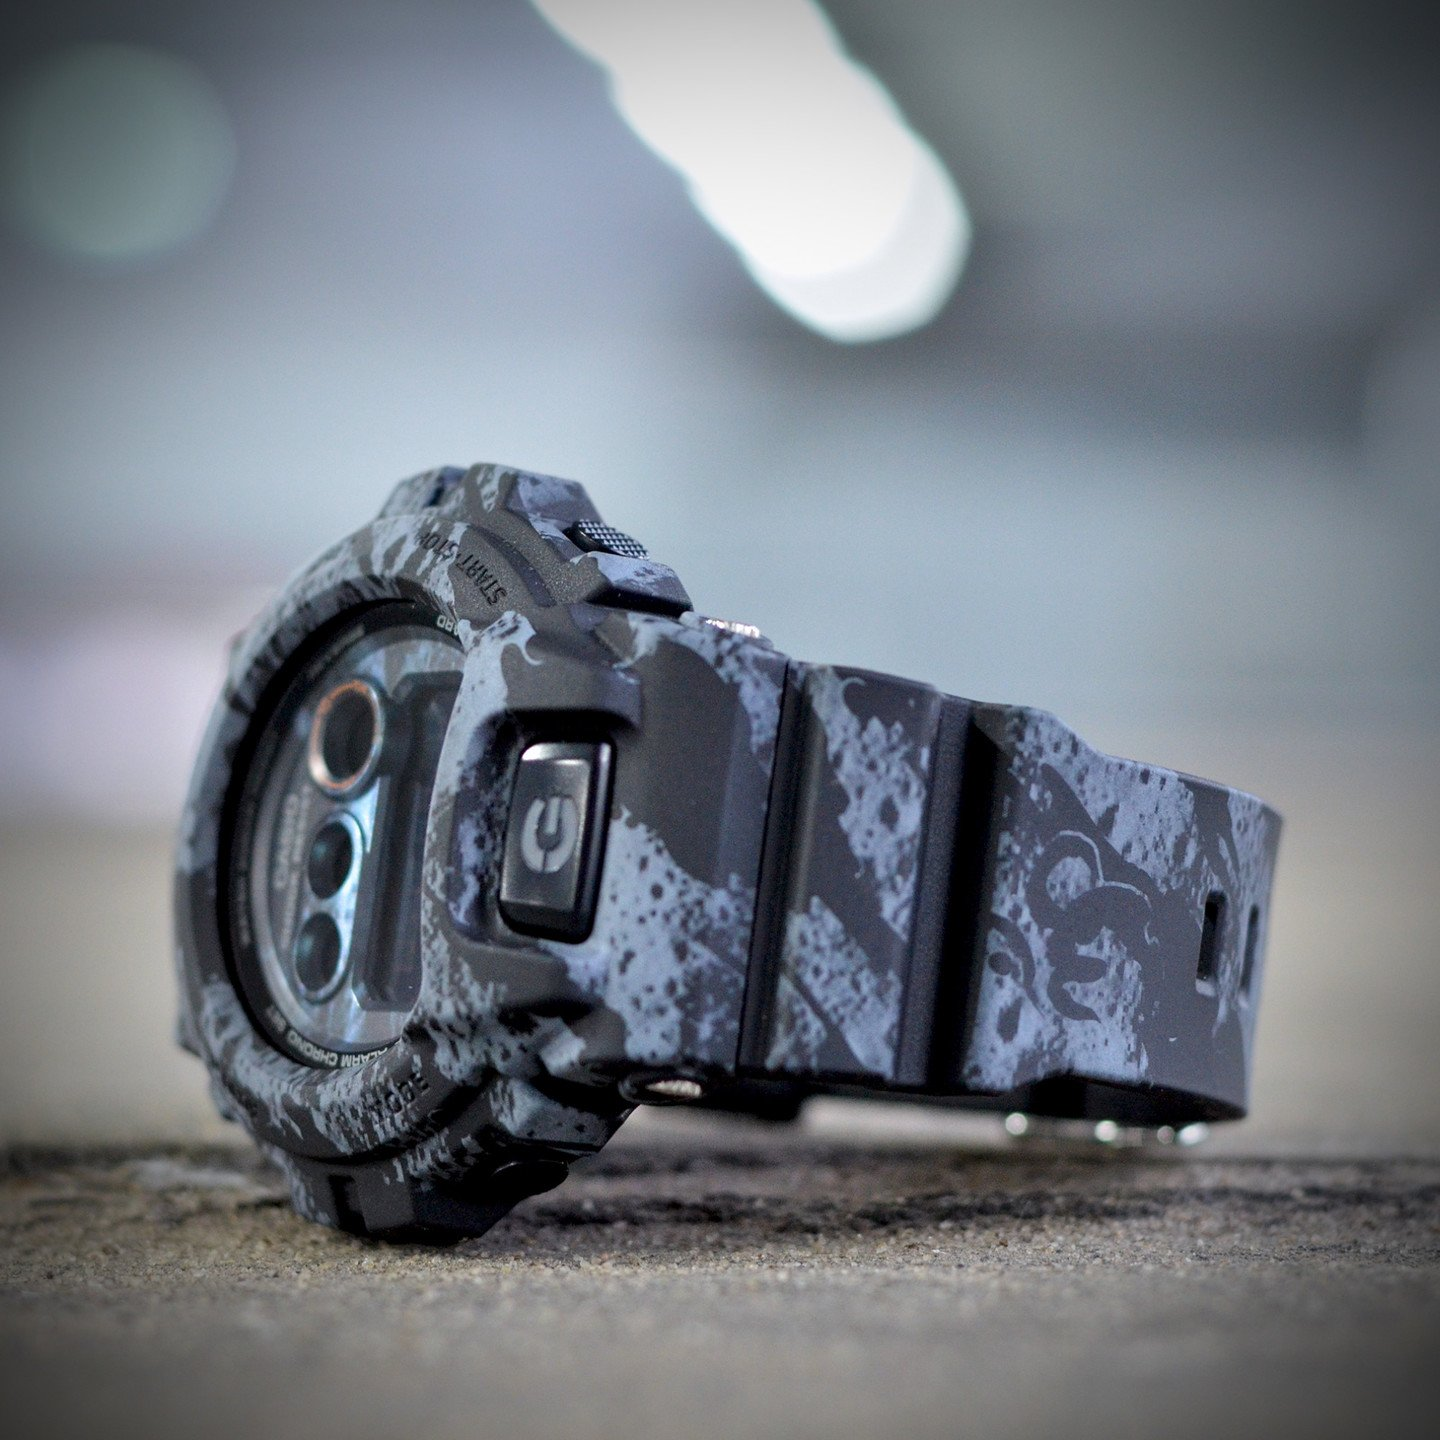 Casio G-Shock x Maharishi Stone Grey / Black GD-X6900MH-1ER-one-size